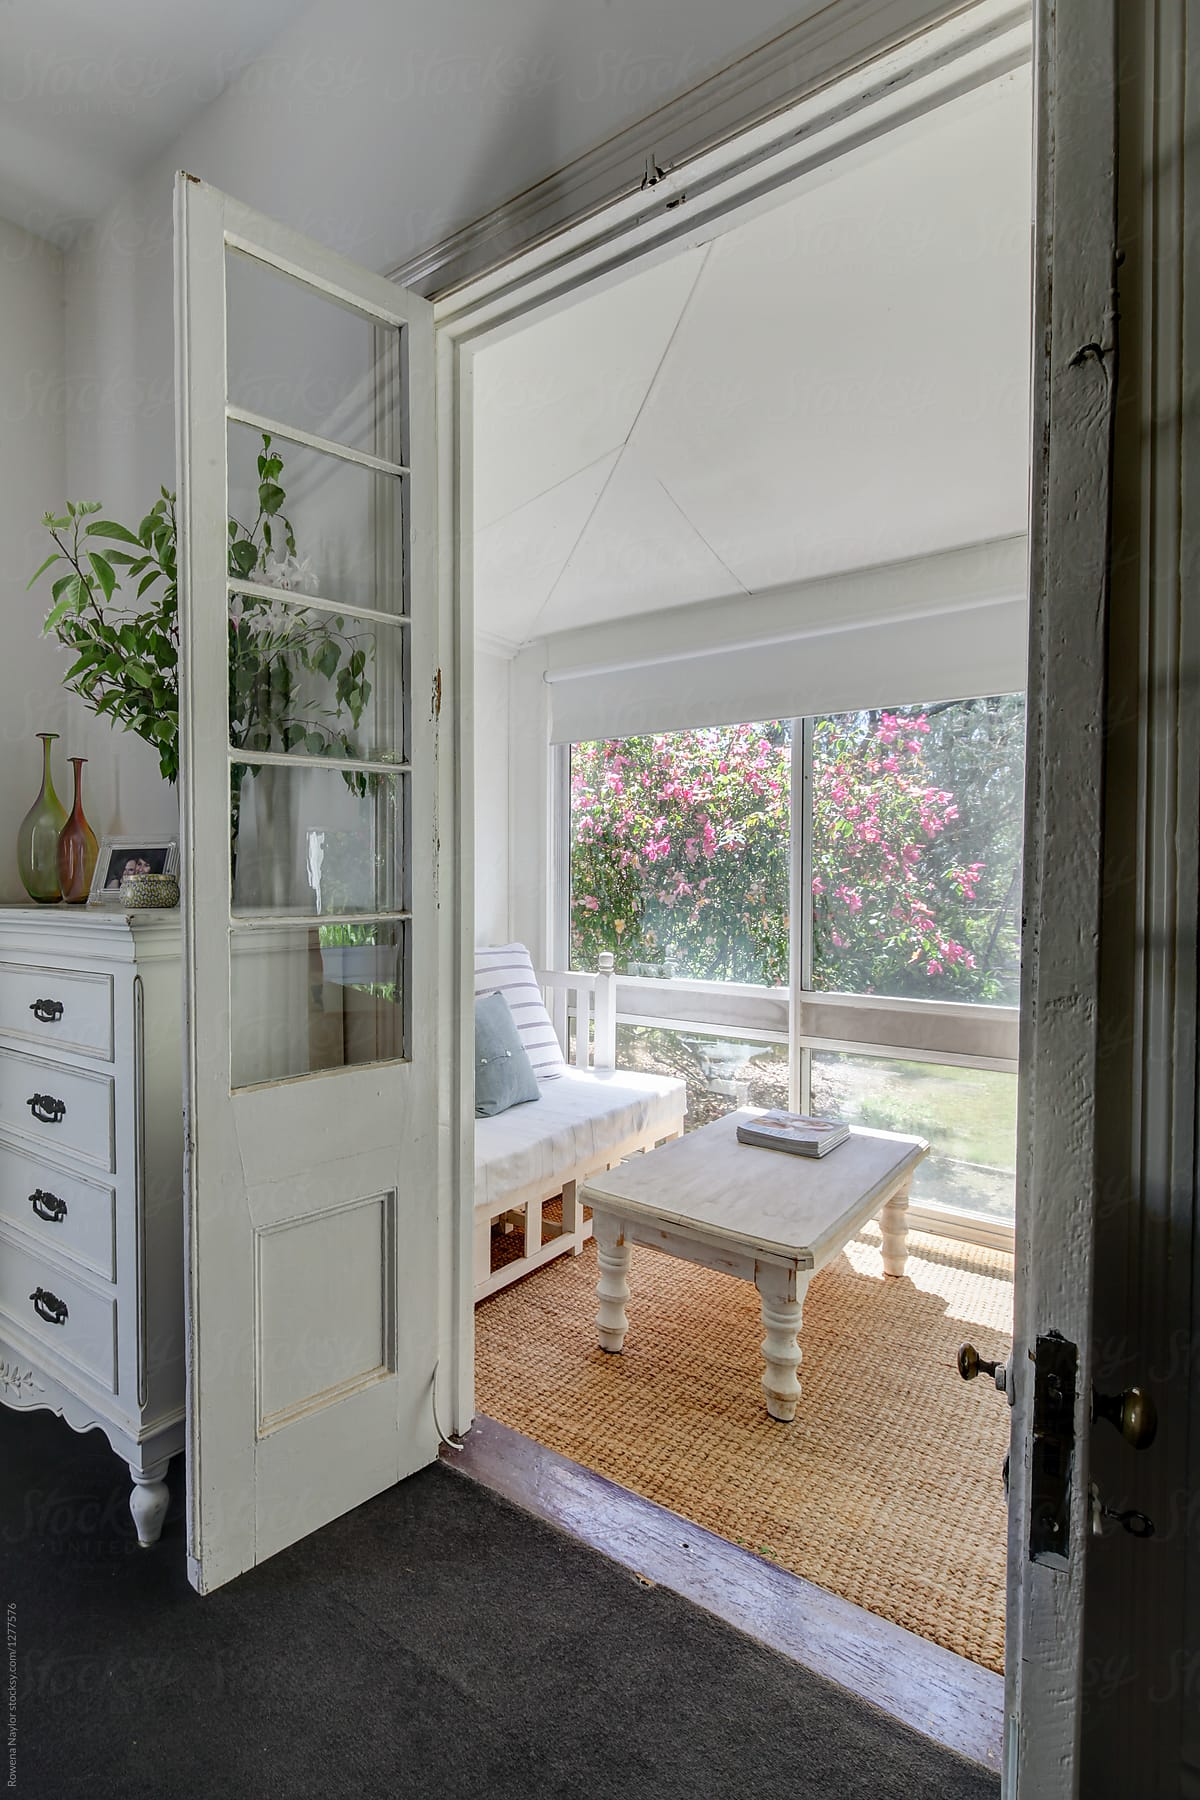 Sunroom Annexe From Bedroom Of Country Home Stocksy United